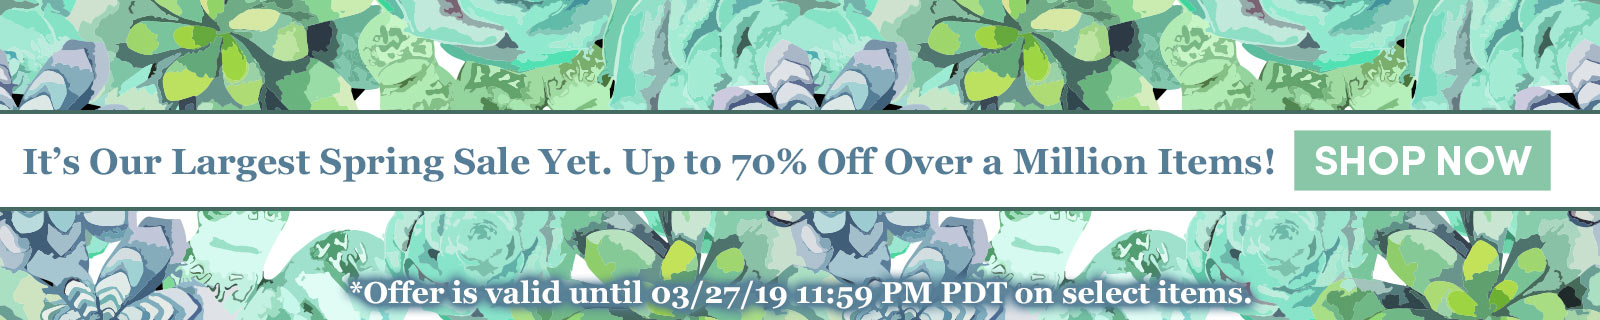 It's Our Largest Spring Sale Yet. Up to 70% Off Over a Million Items! SHOP NOW